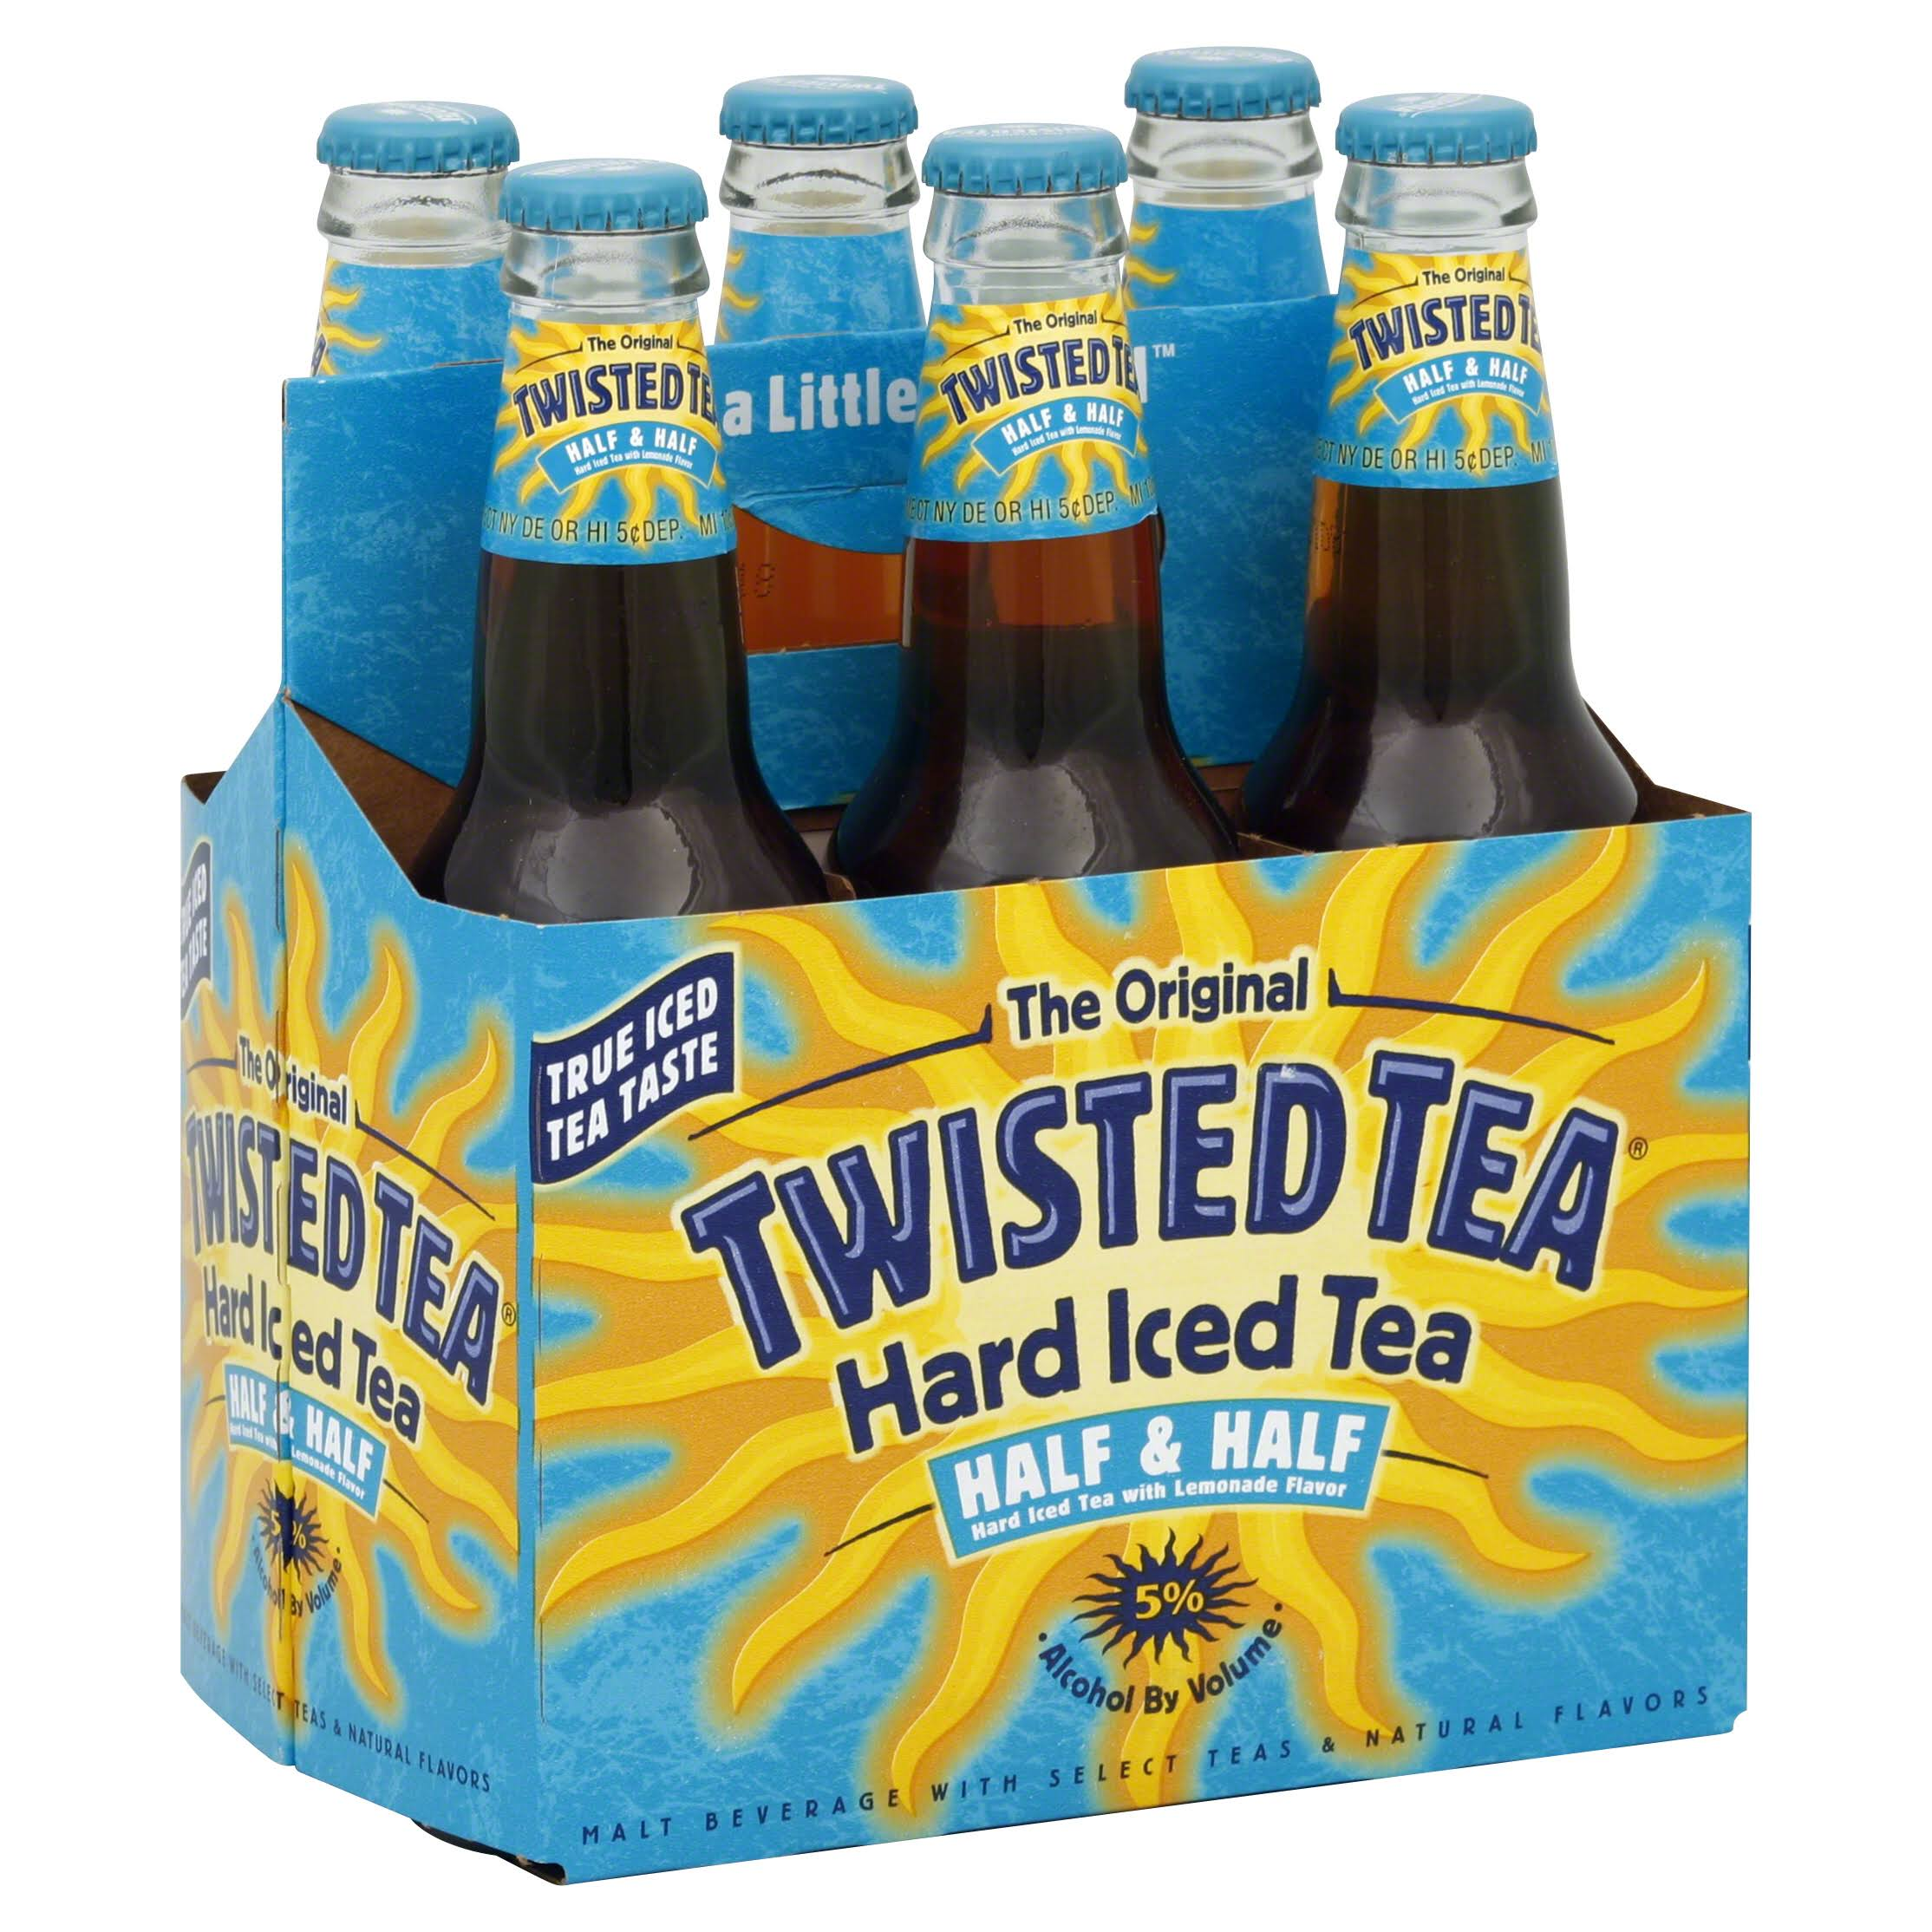 Twisted Tea Hard Iced Tea, with Lemonade Flavor, Half & Half - 6 - twelve fl oz bottles